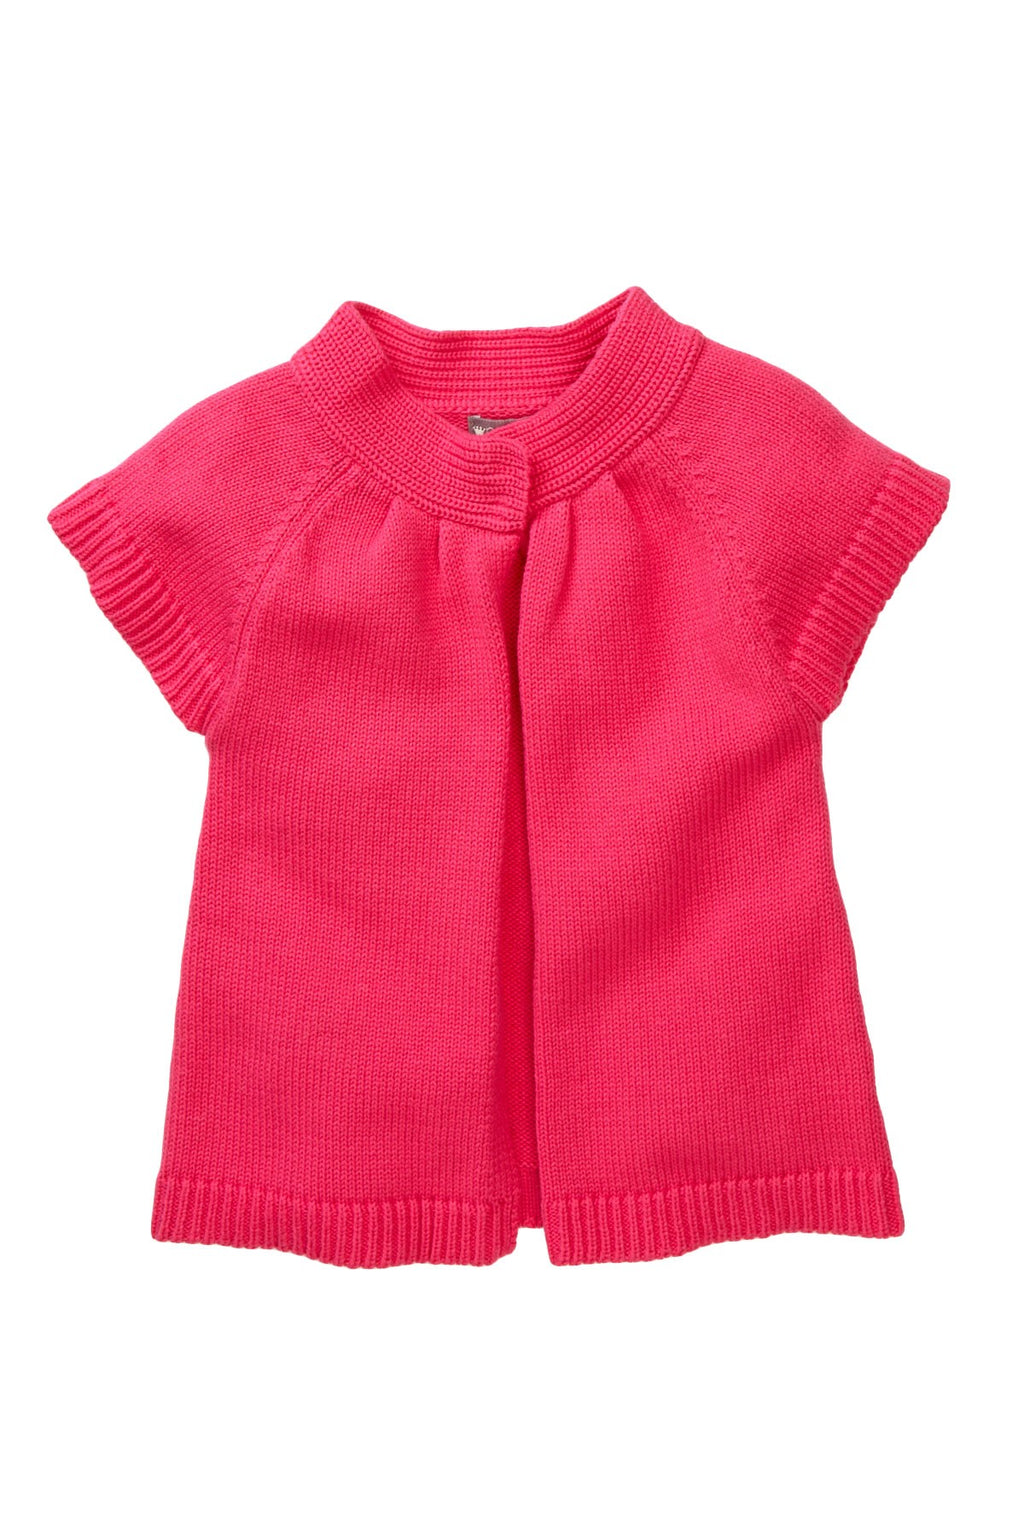 Magenta Short-Sleeve Cardigan - Petit Confection